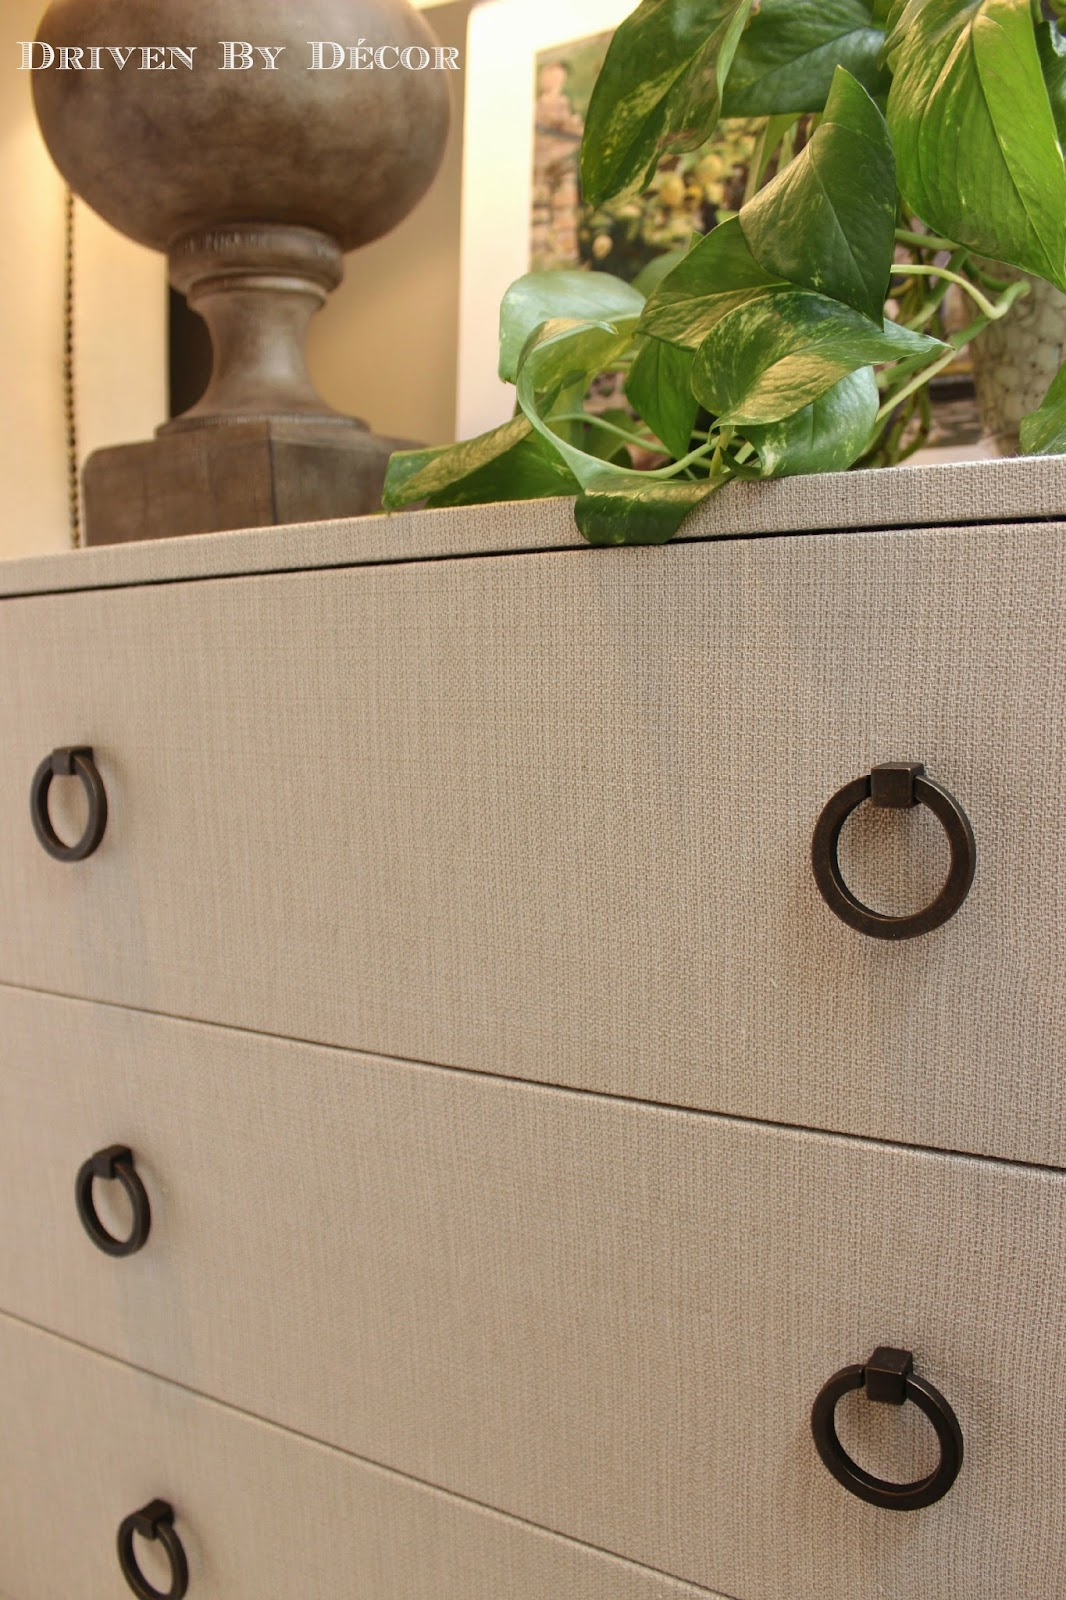 Trysil Ikea Chest Of Drawers ~ IKEA Hack Fabric Covered TRYSIL Chest  Driven by Decor